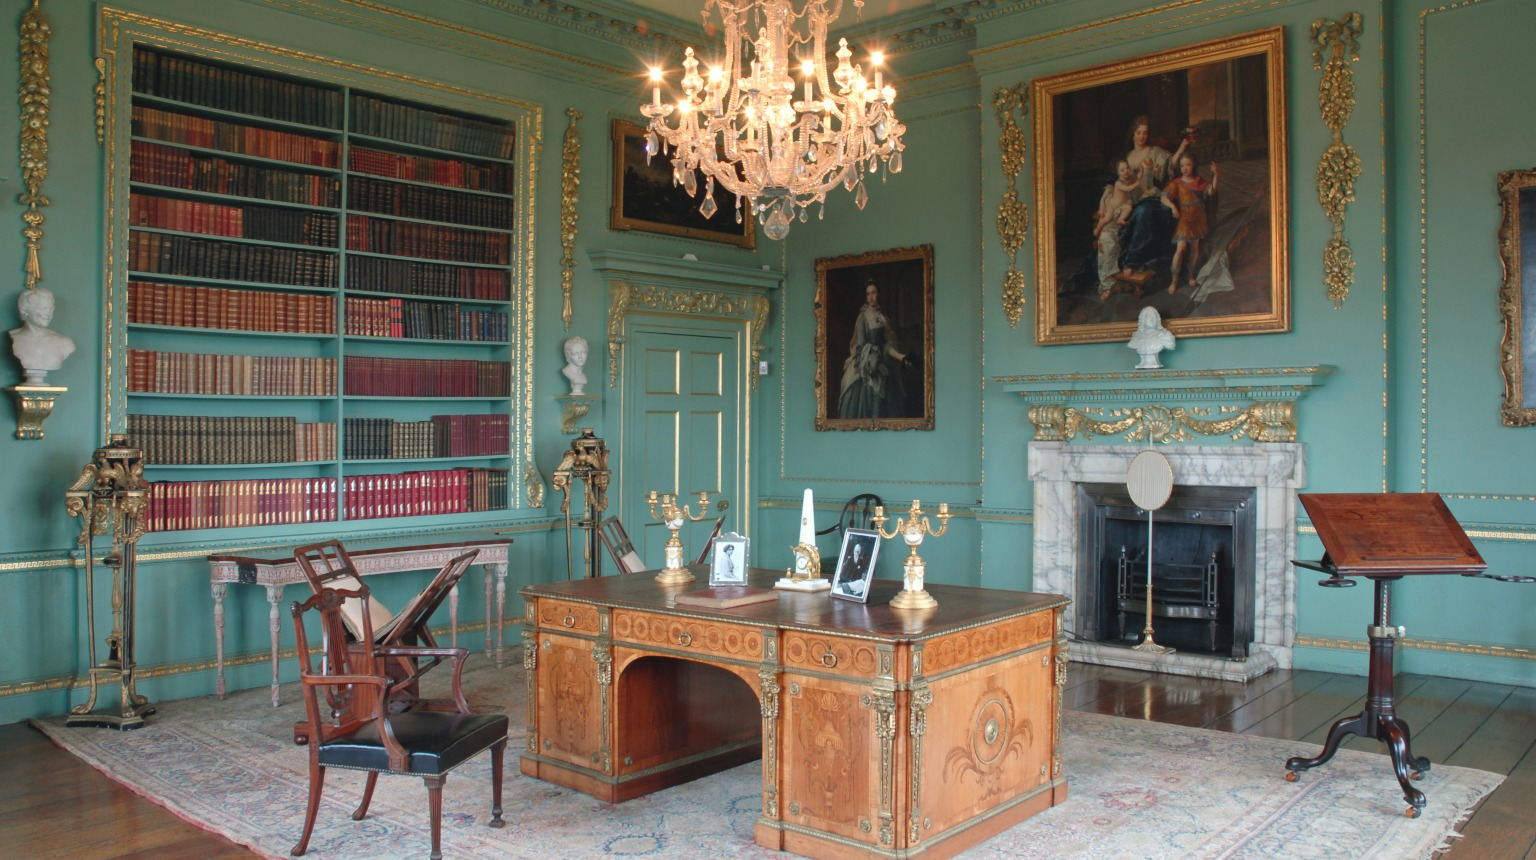 Mr Wood's library with Chippendale furniture, Temple Newsam, Leeds